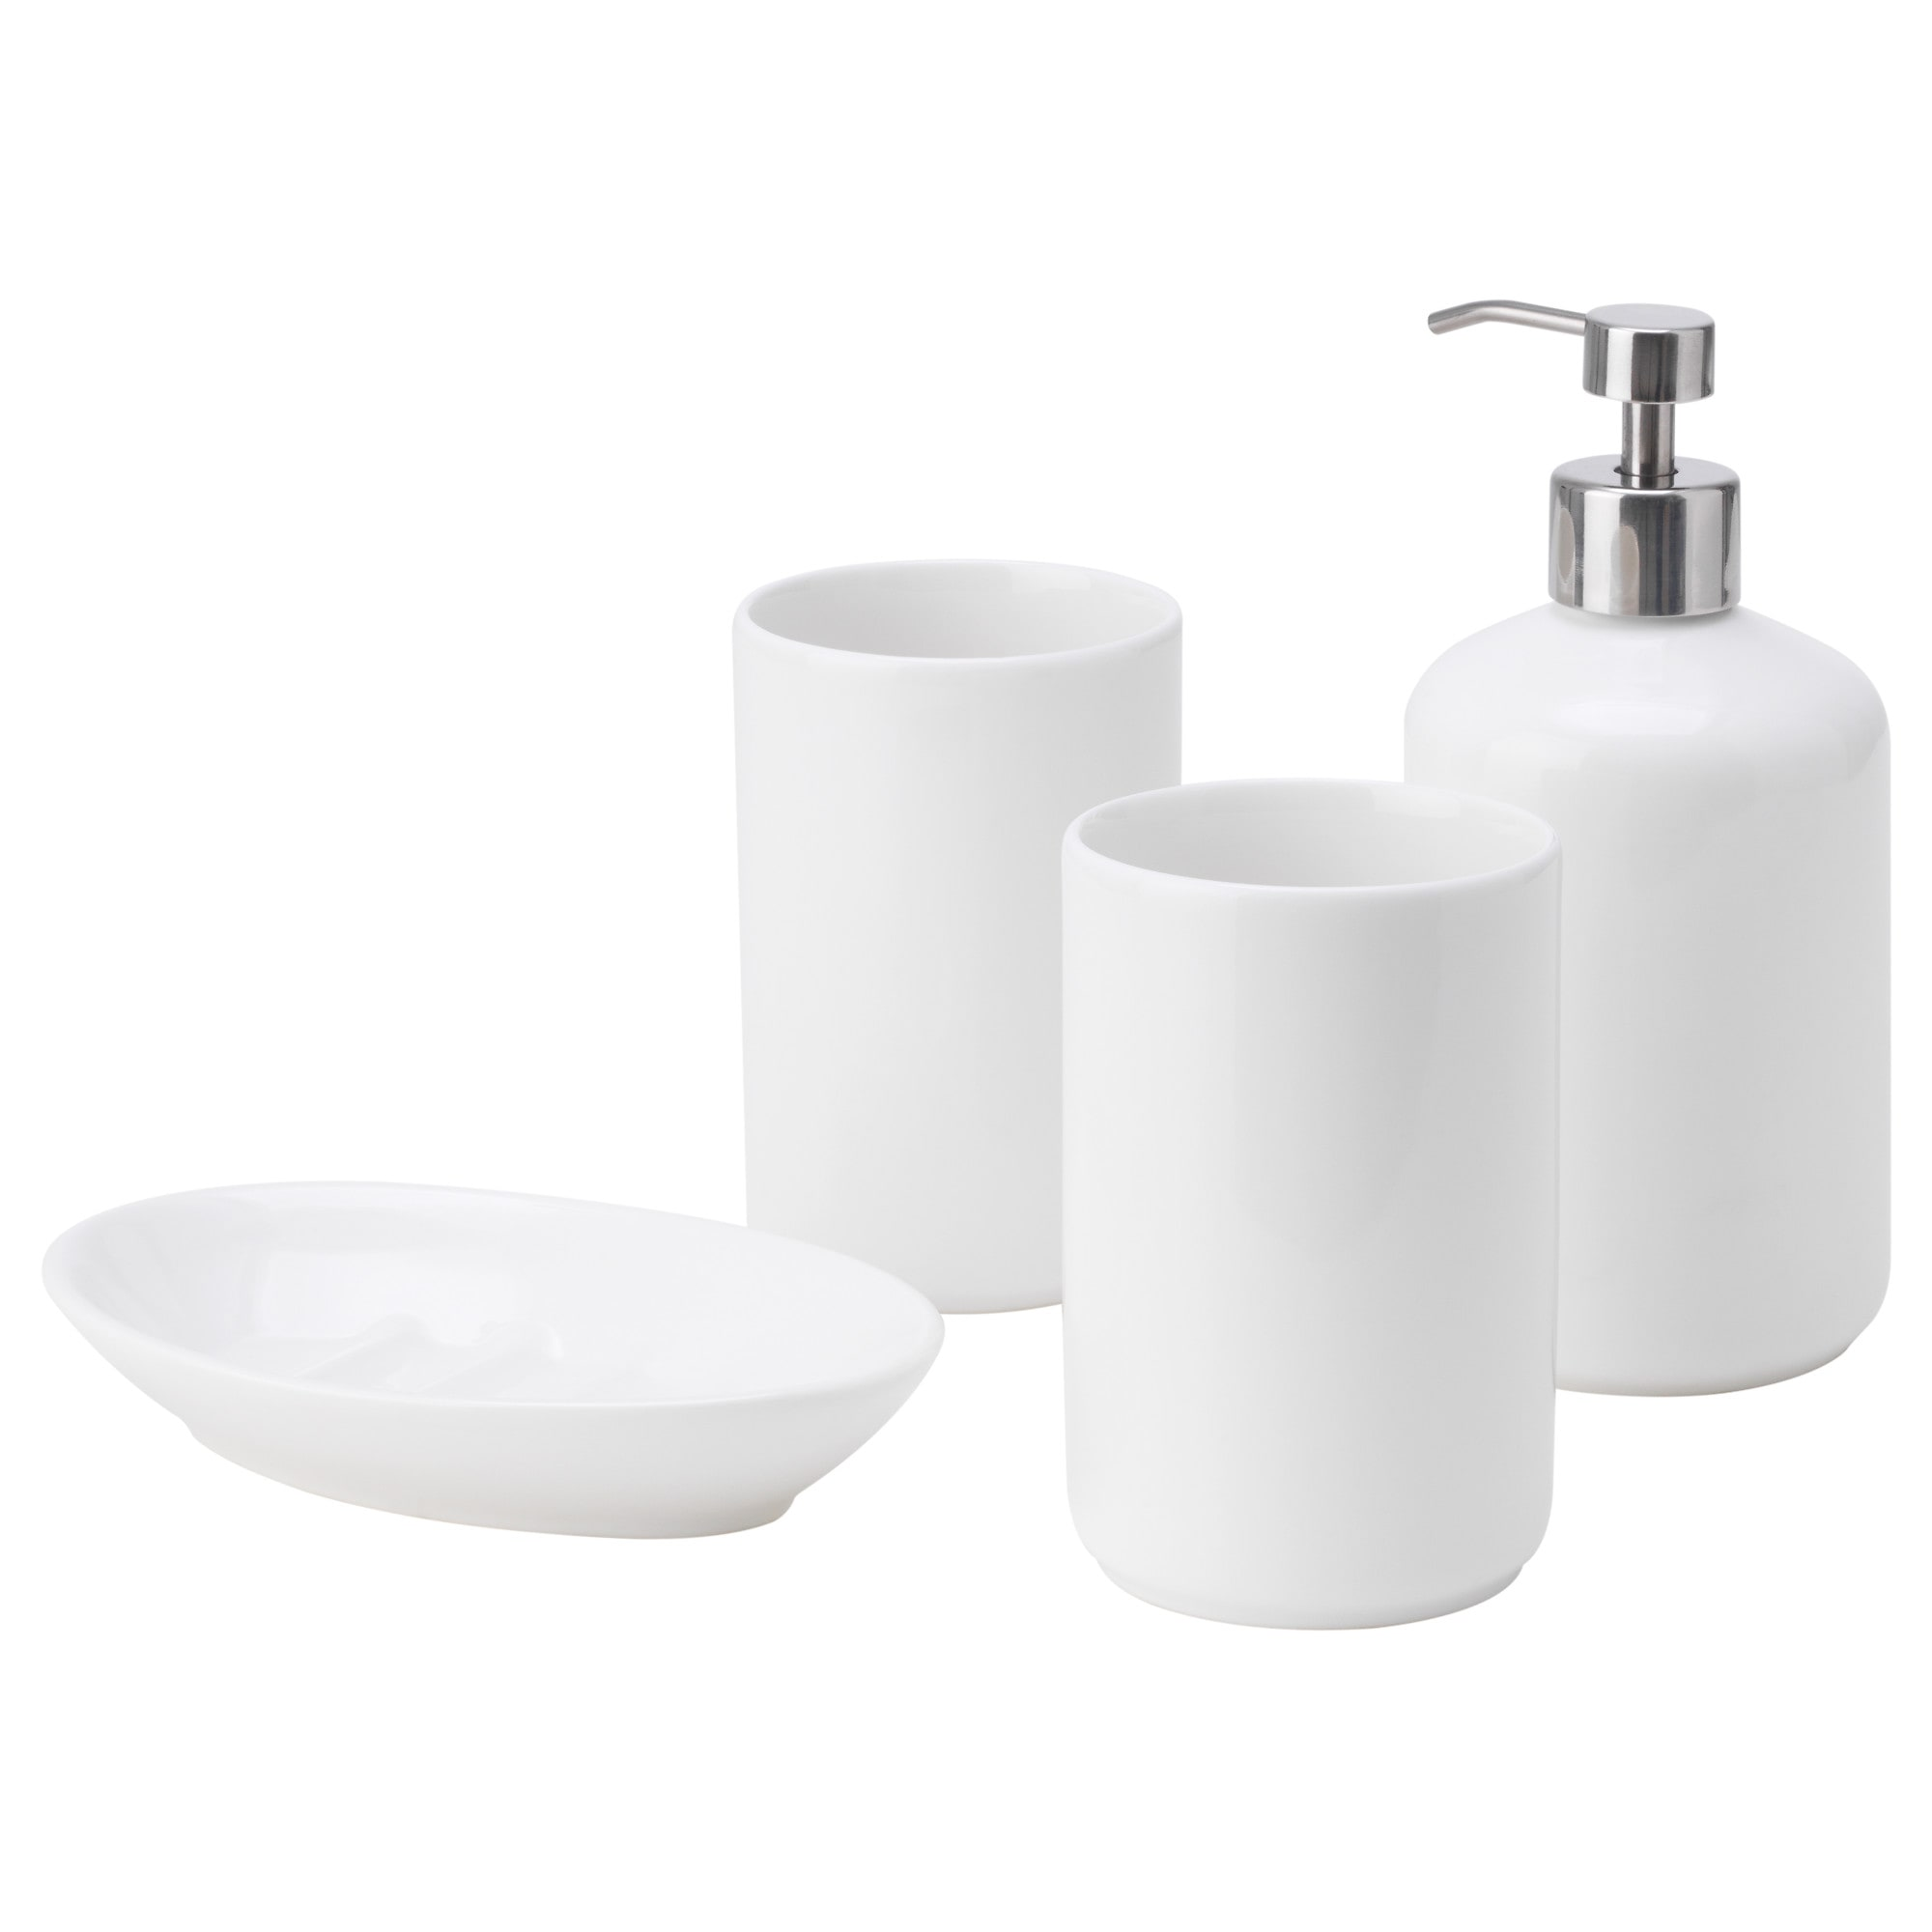 boasj 4 piece bathroom set - White Bathroom Accessories Ceramic